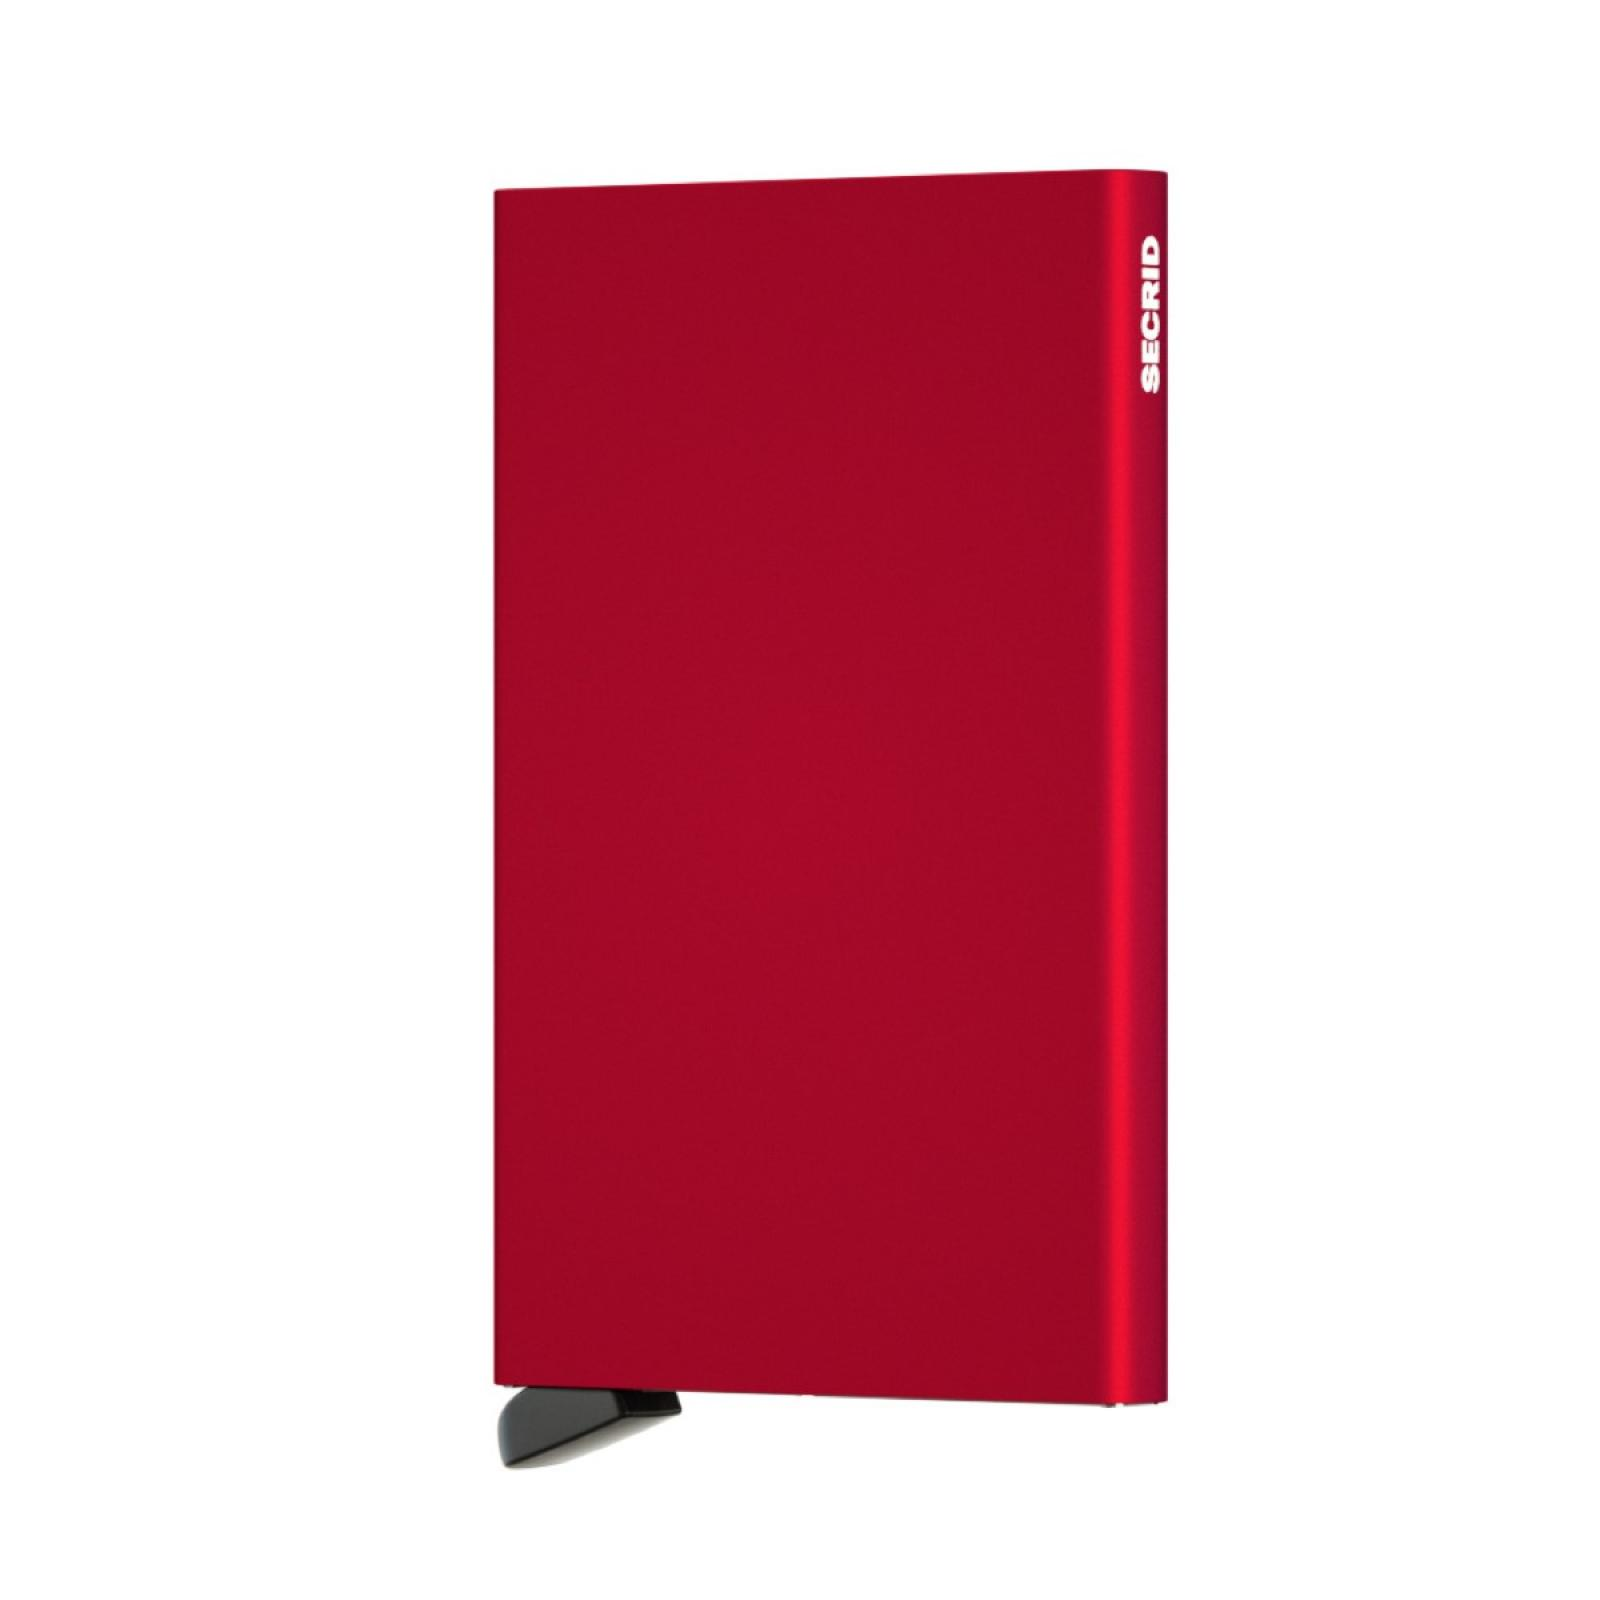 SCRD Cardprotector RFID Red - 1